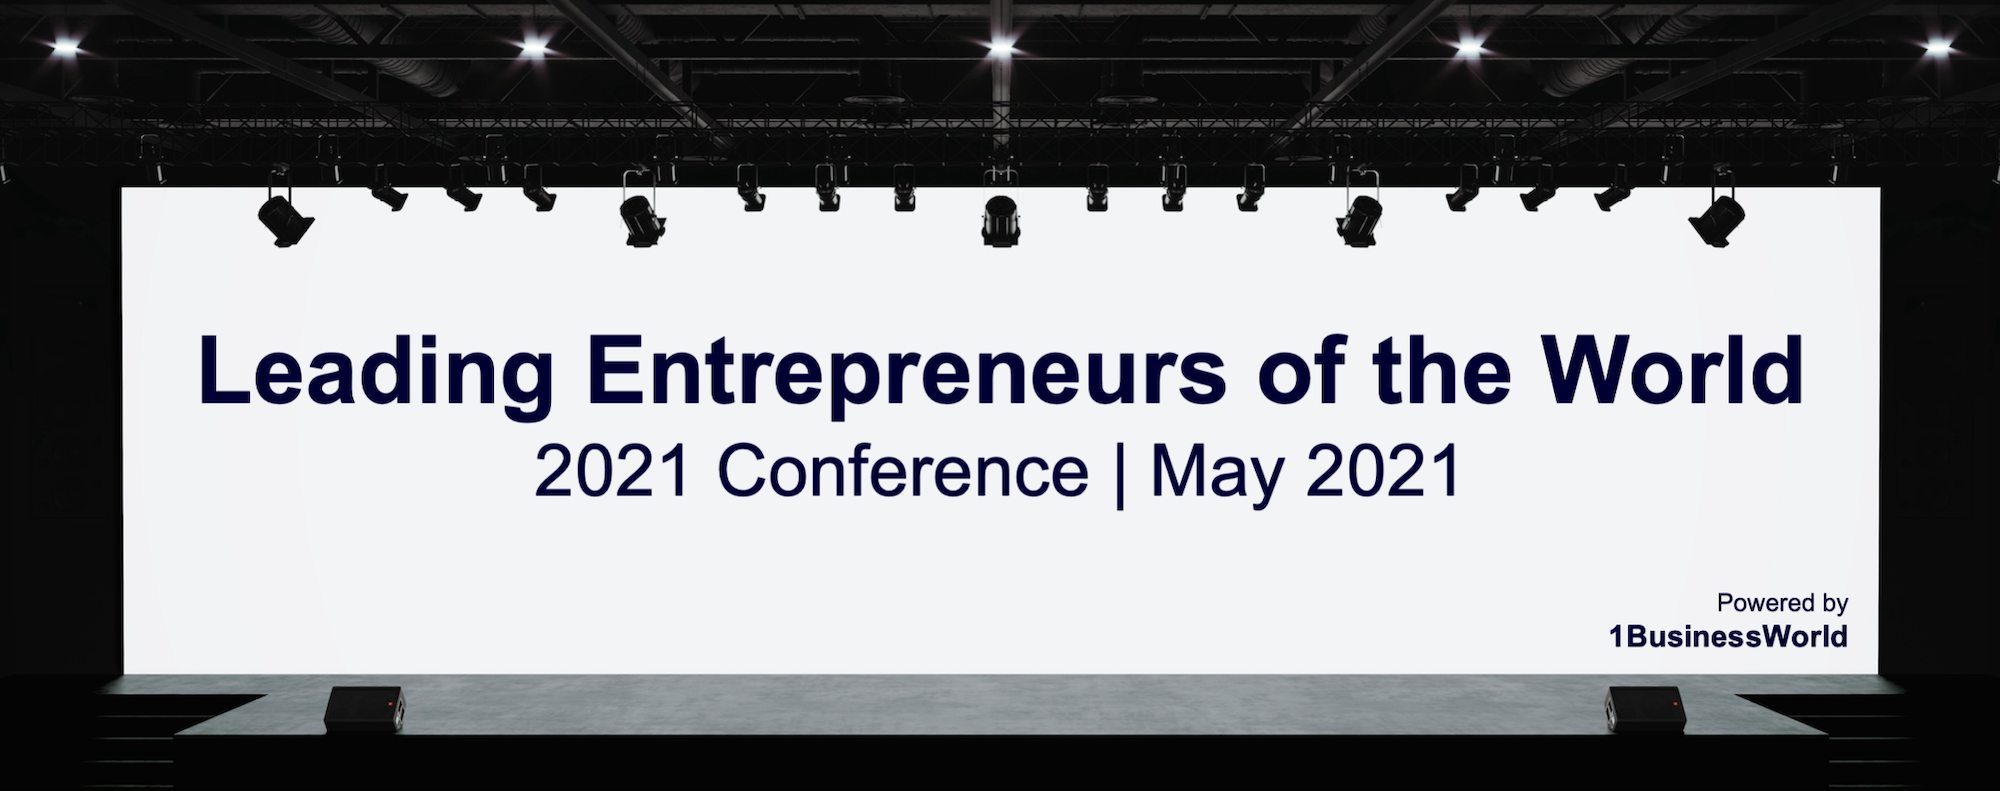 Leading Entrepreneurs of the World Conference